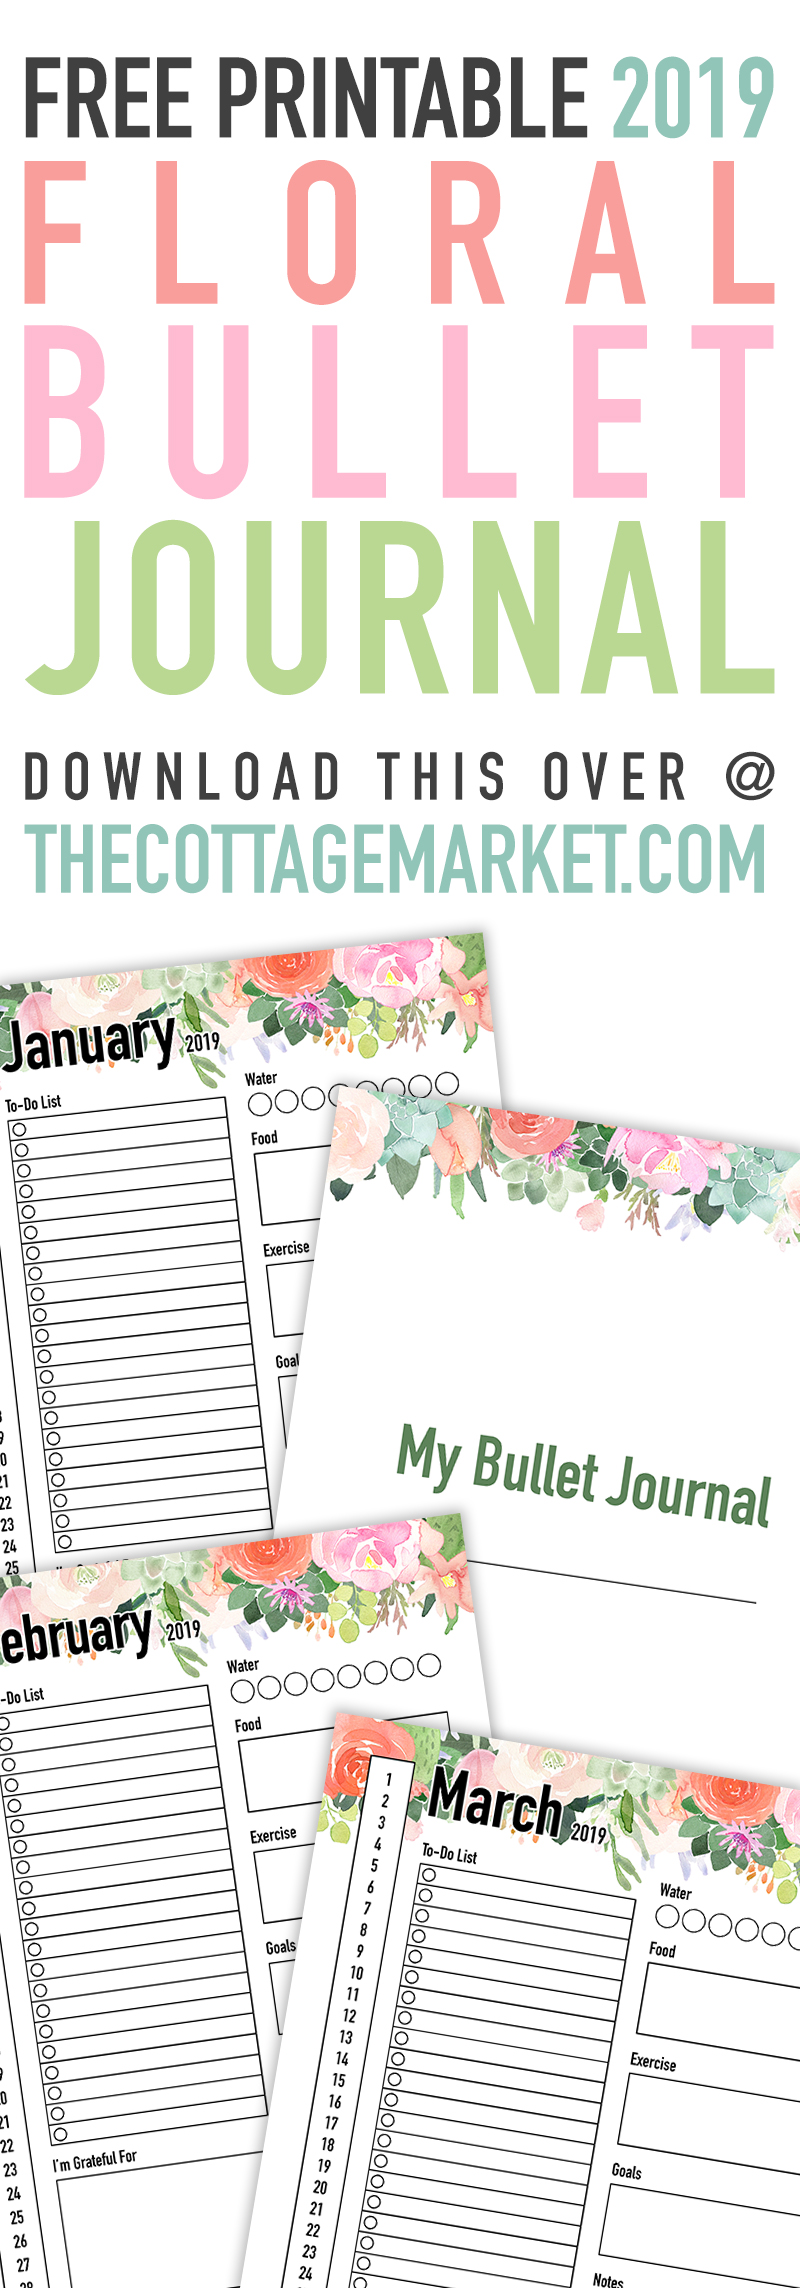 This Free Printable 2019 Floral Bullet Journal is waiting for you to print out so you can keep track of your life day to day! Get organized in 2019!